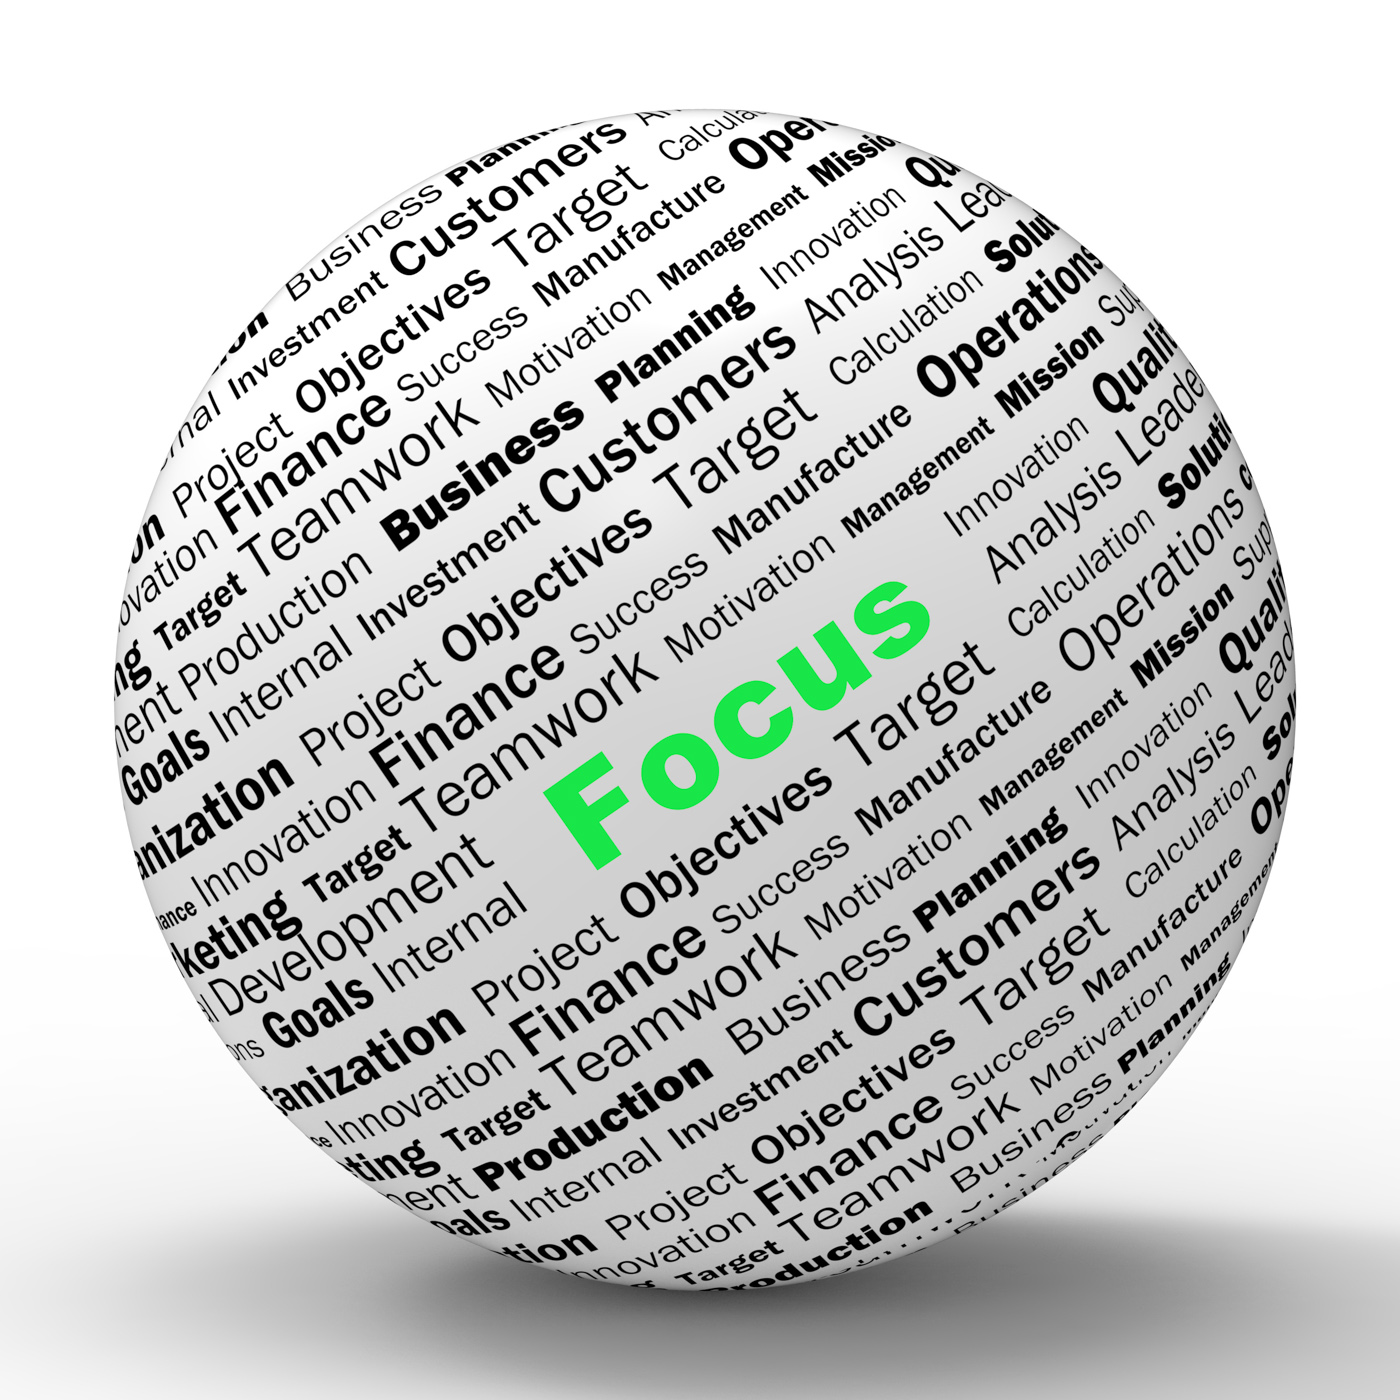 Focus Sphere Definition Shows Concentration And Targeting, Achievement, Goal, Success, Sphere, HQ Photo